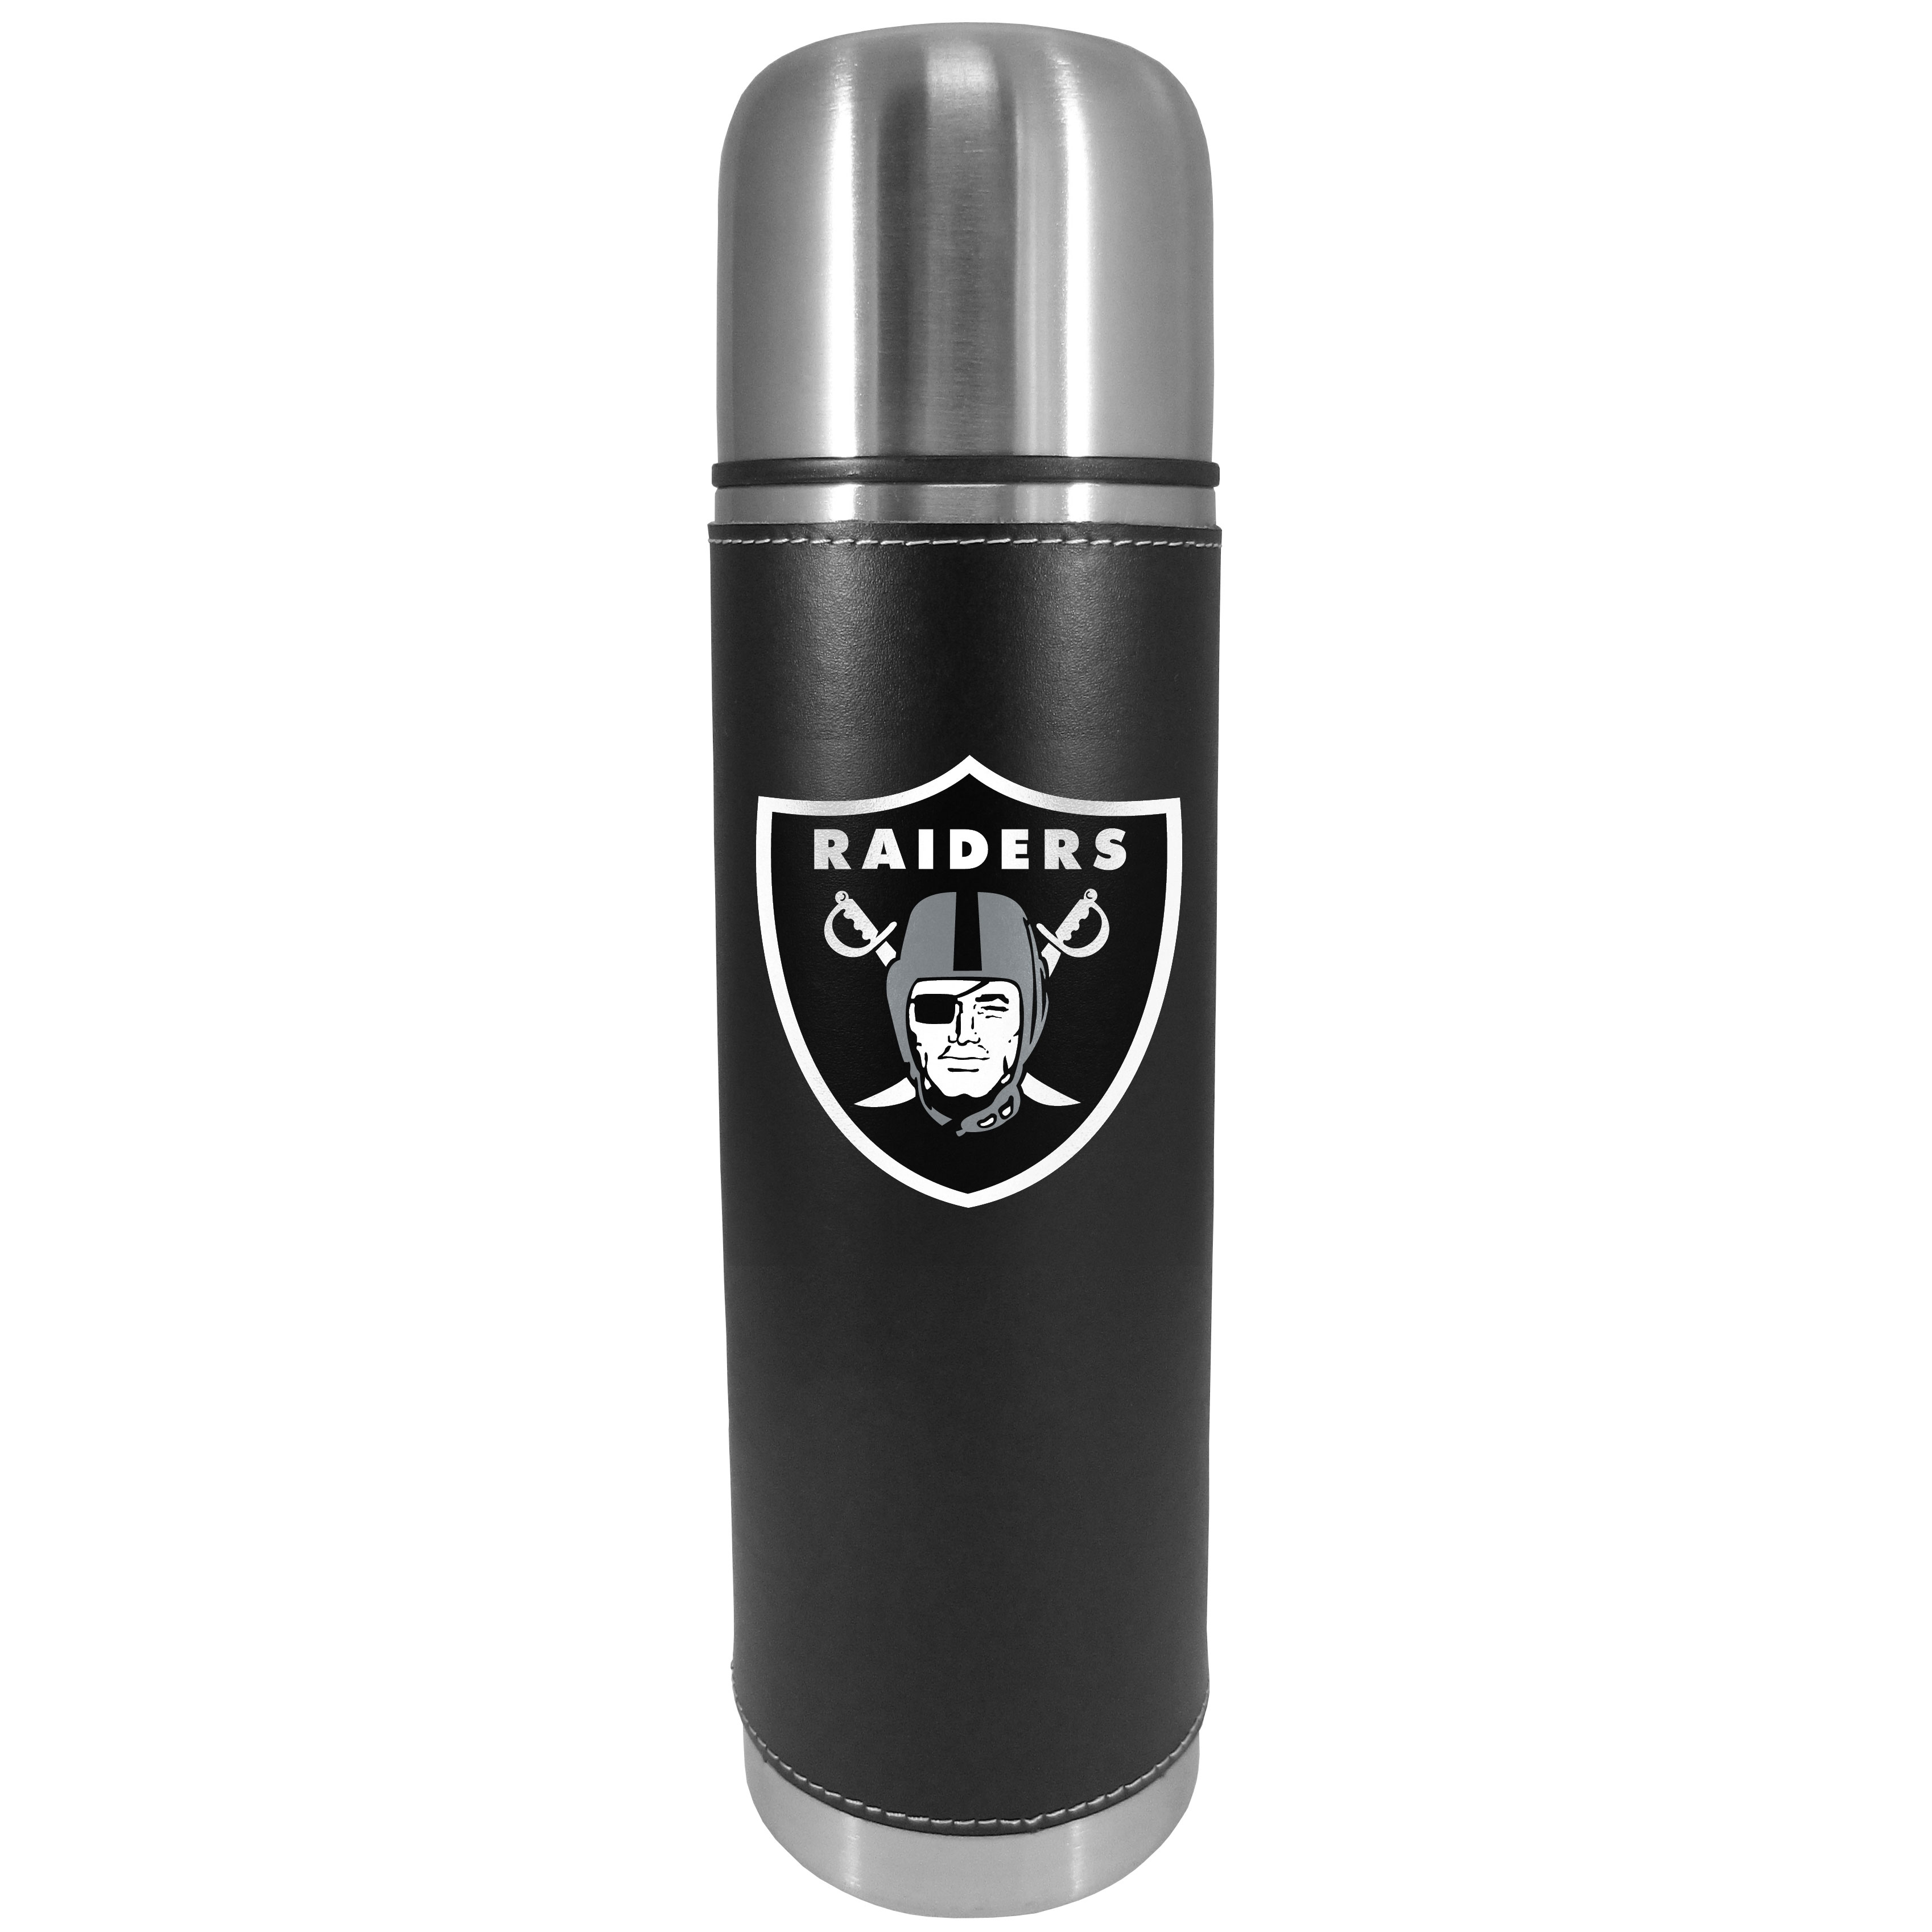 Oakland Raiders Graphics Thermos - This attractive, 26 ounce Oakland Raiders thermos is a great way to keep your beverages hot while on the go. The 11 inch tall, vacuum sealed thermos features a black vinyl wrap with stitched details and a digitally printed team logo. The lid screws on and can be used as a cup.